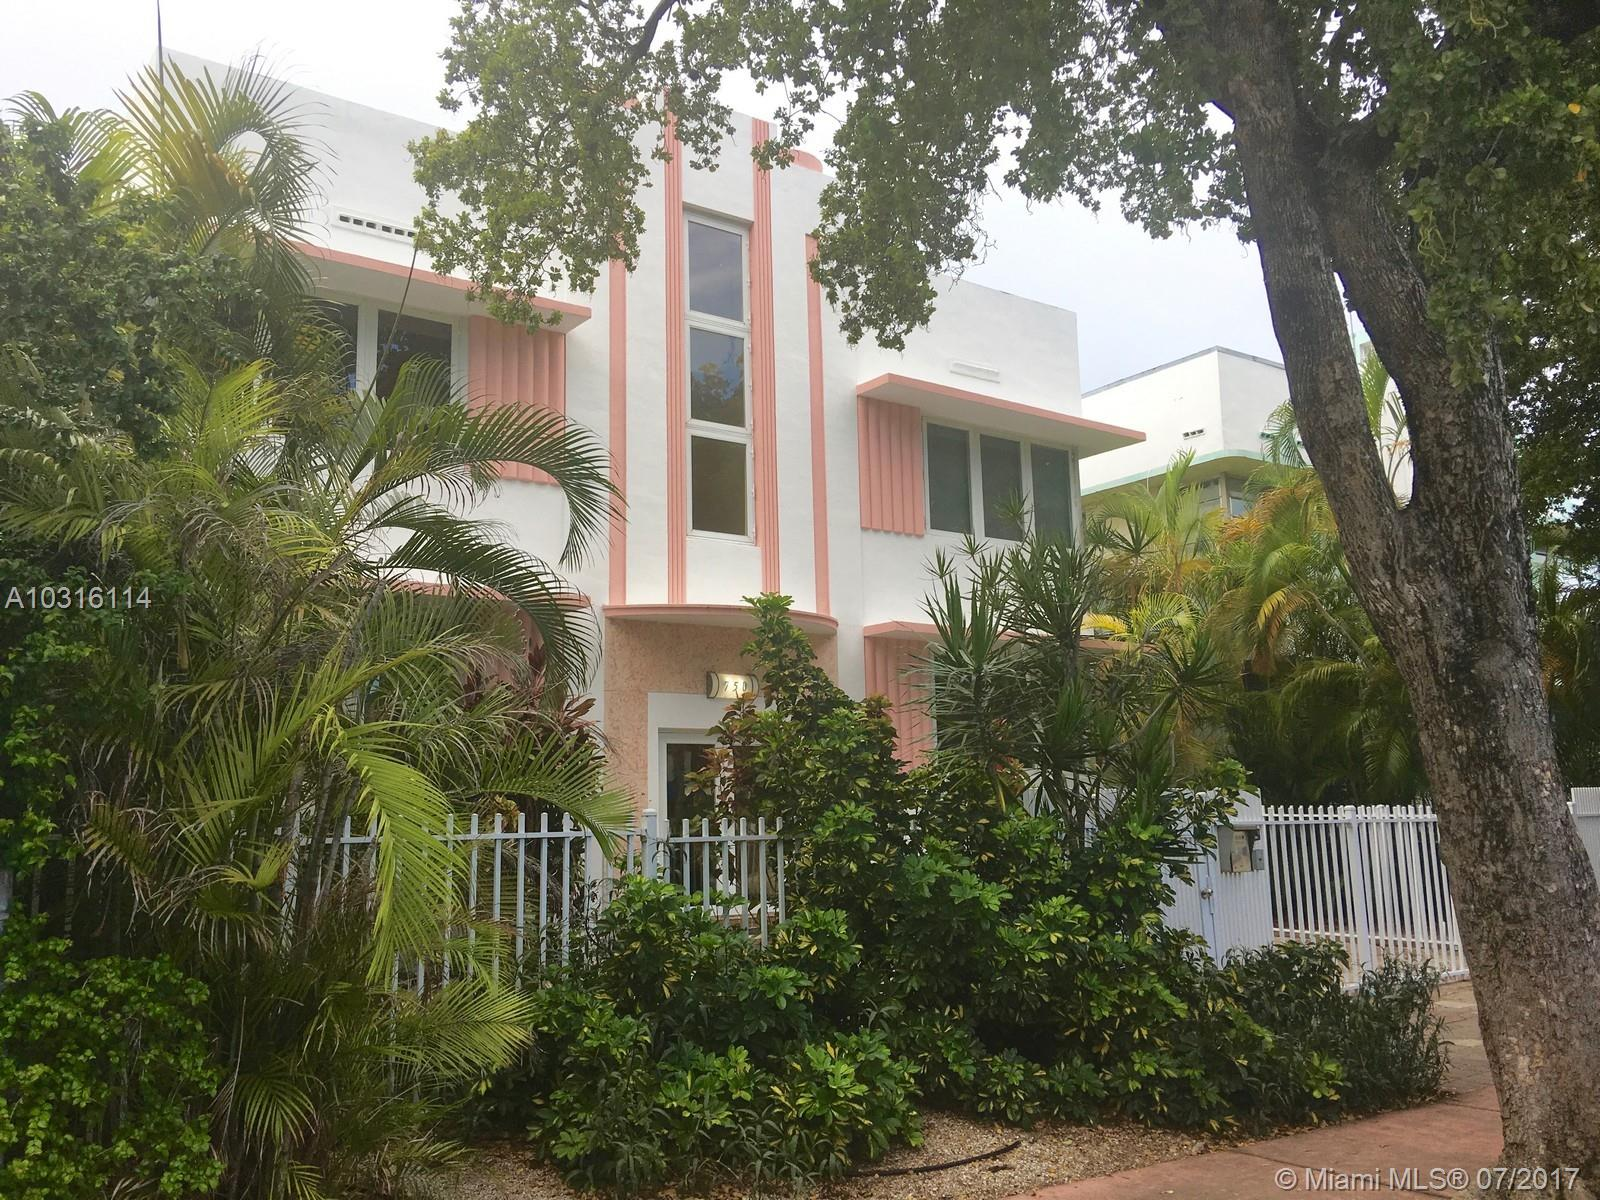 750 Jefferson Avenue # 1, Miami Beach, FL 33139